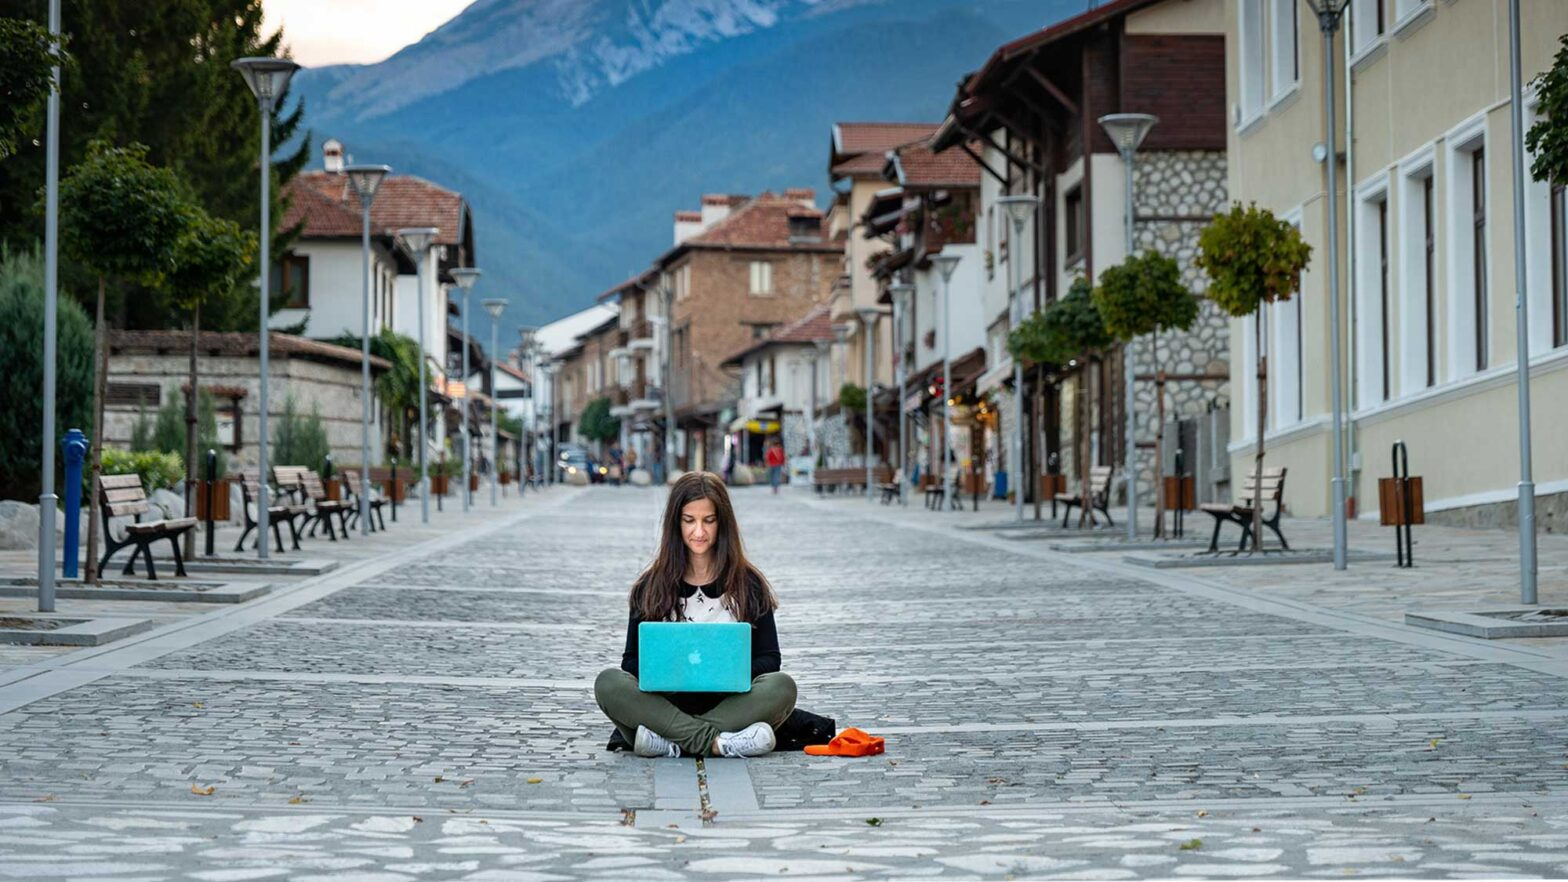 Digital Nomad - How to Make it Possible